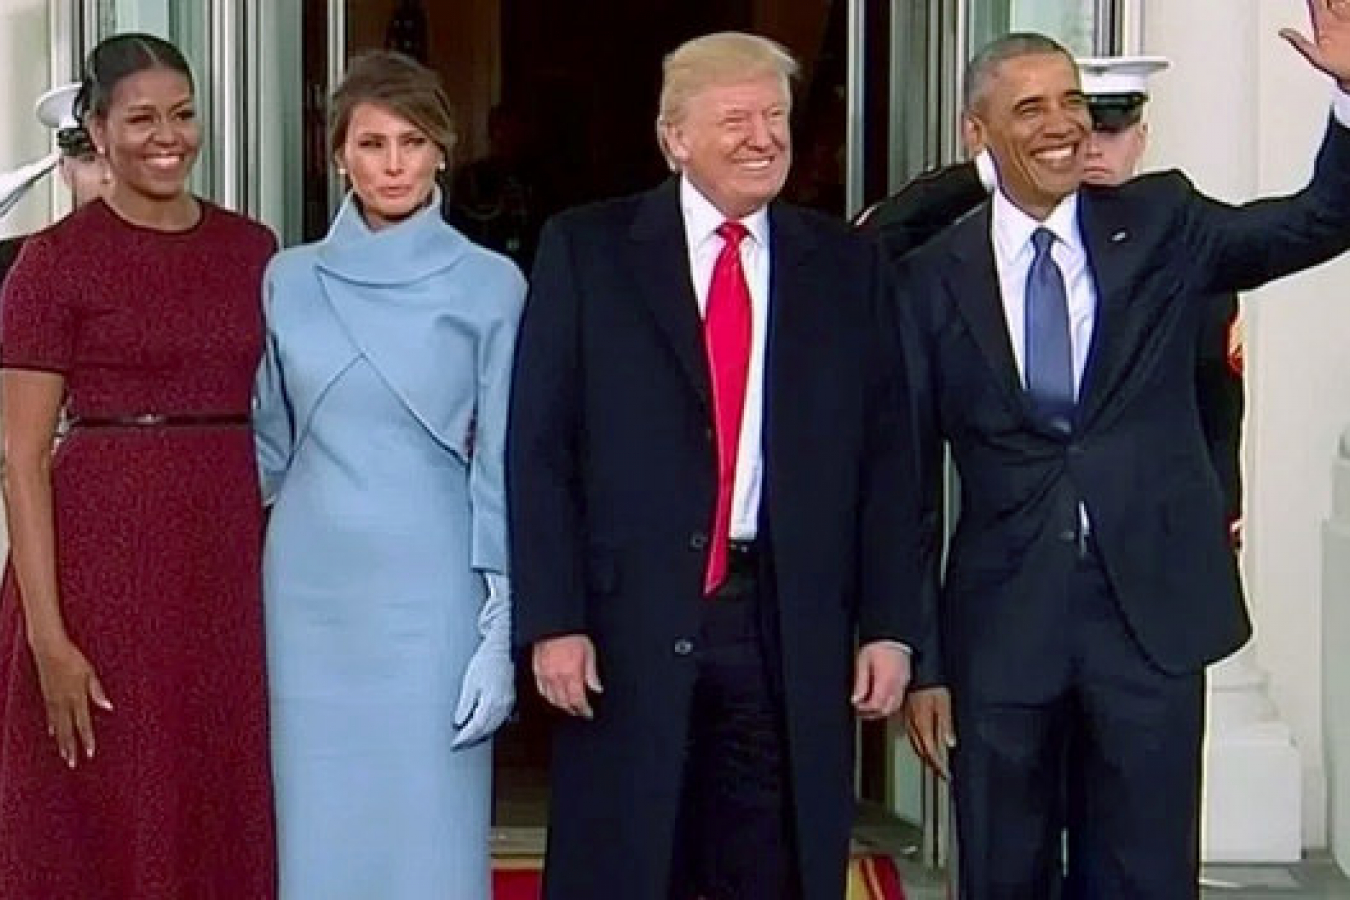 Donald Trump and Barack Obama with wives Melania Trump and Michelle Obama